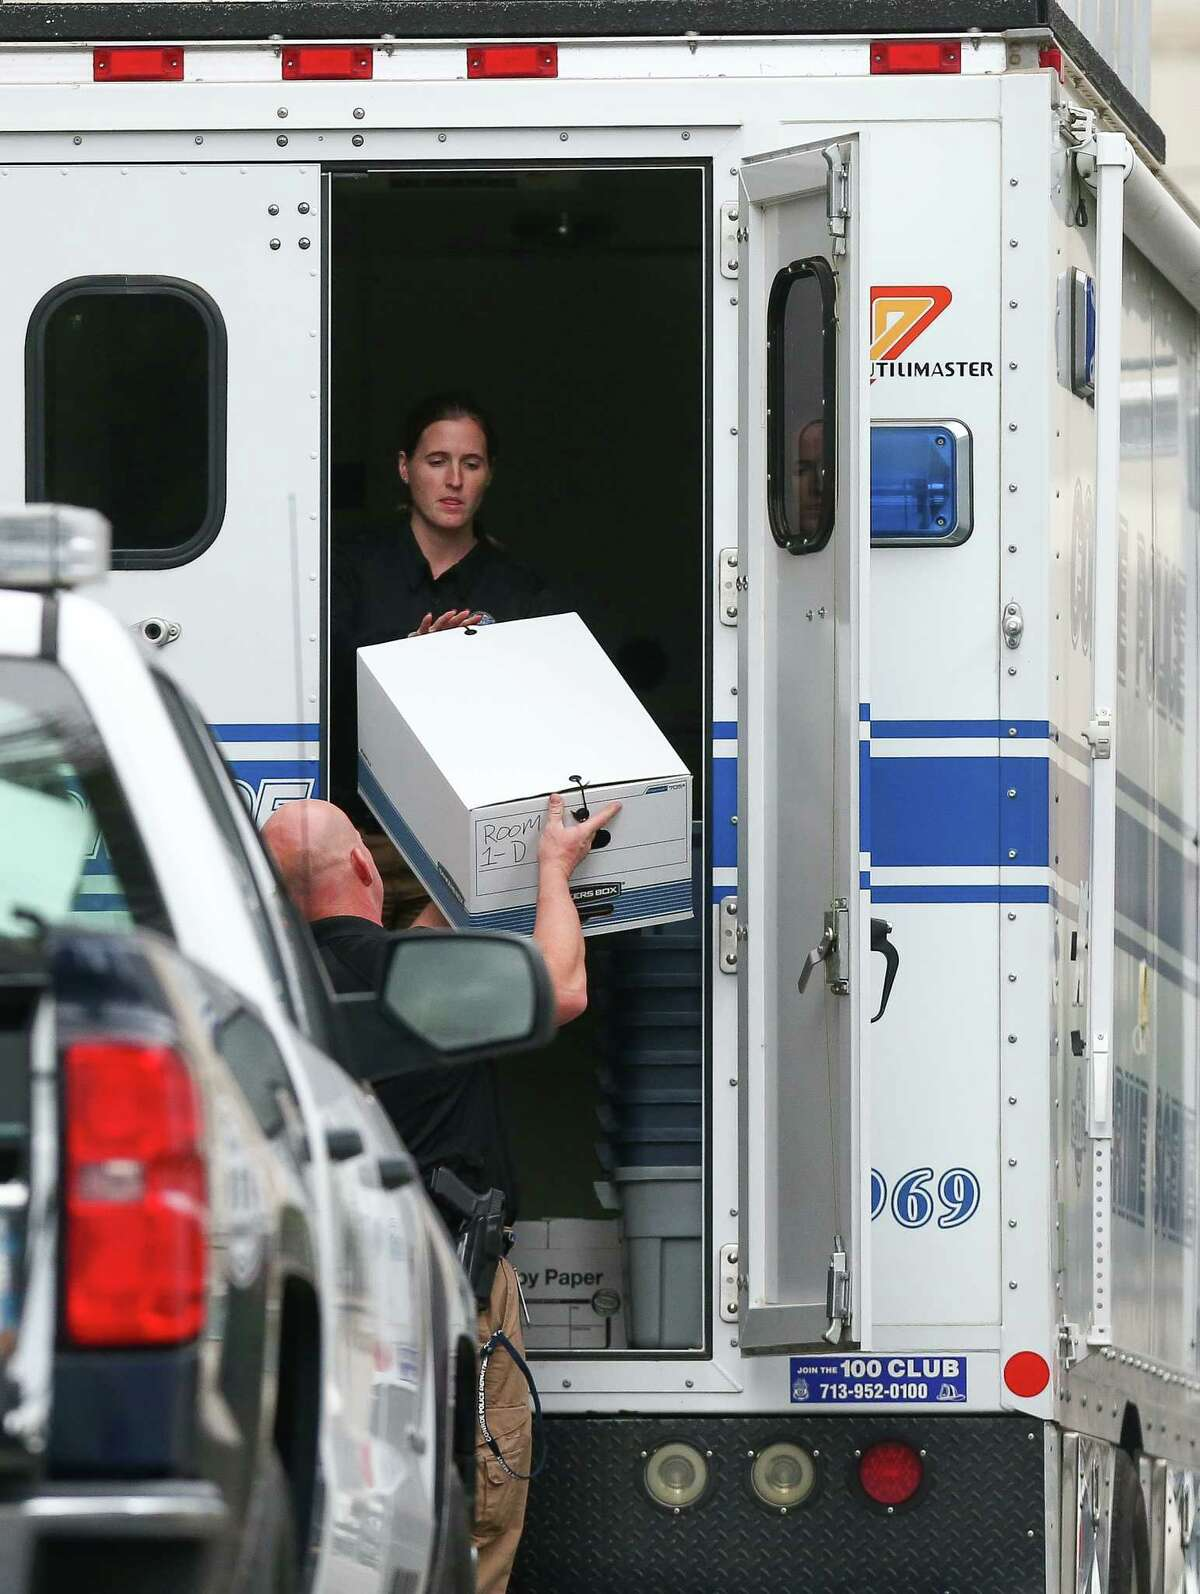 Authorities load up an evidence box into a Conroe Police Department vehicle as they conduct a search warrant of the Chancery of the Archdiocese of Galveston-Houston on Wednesday.